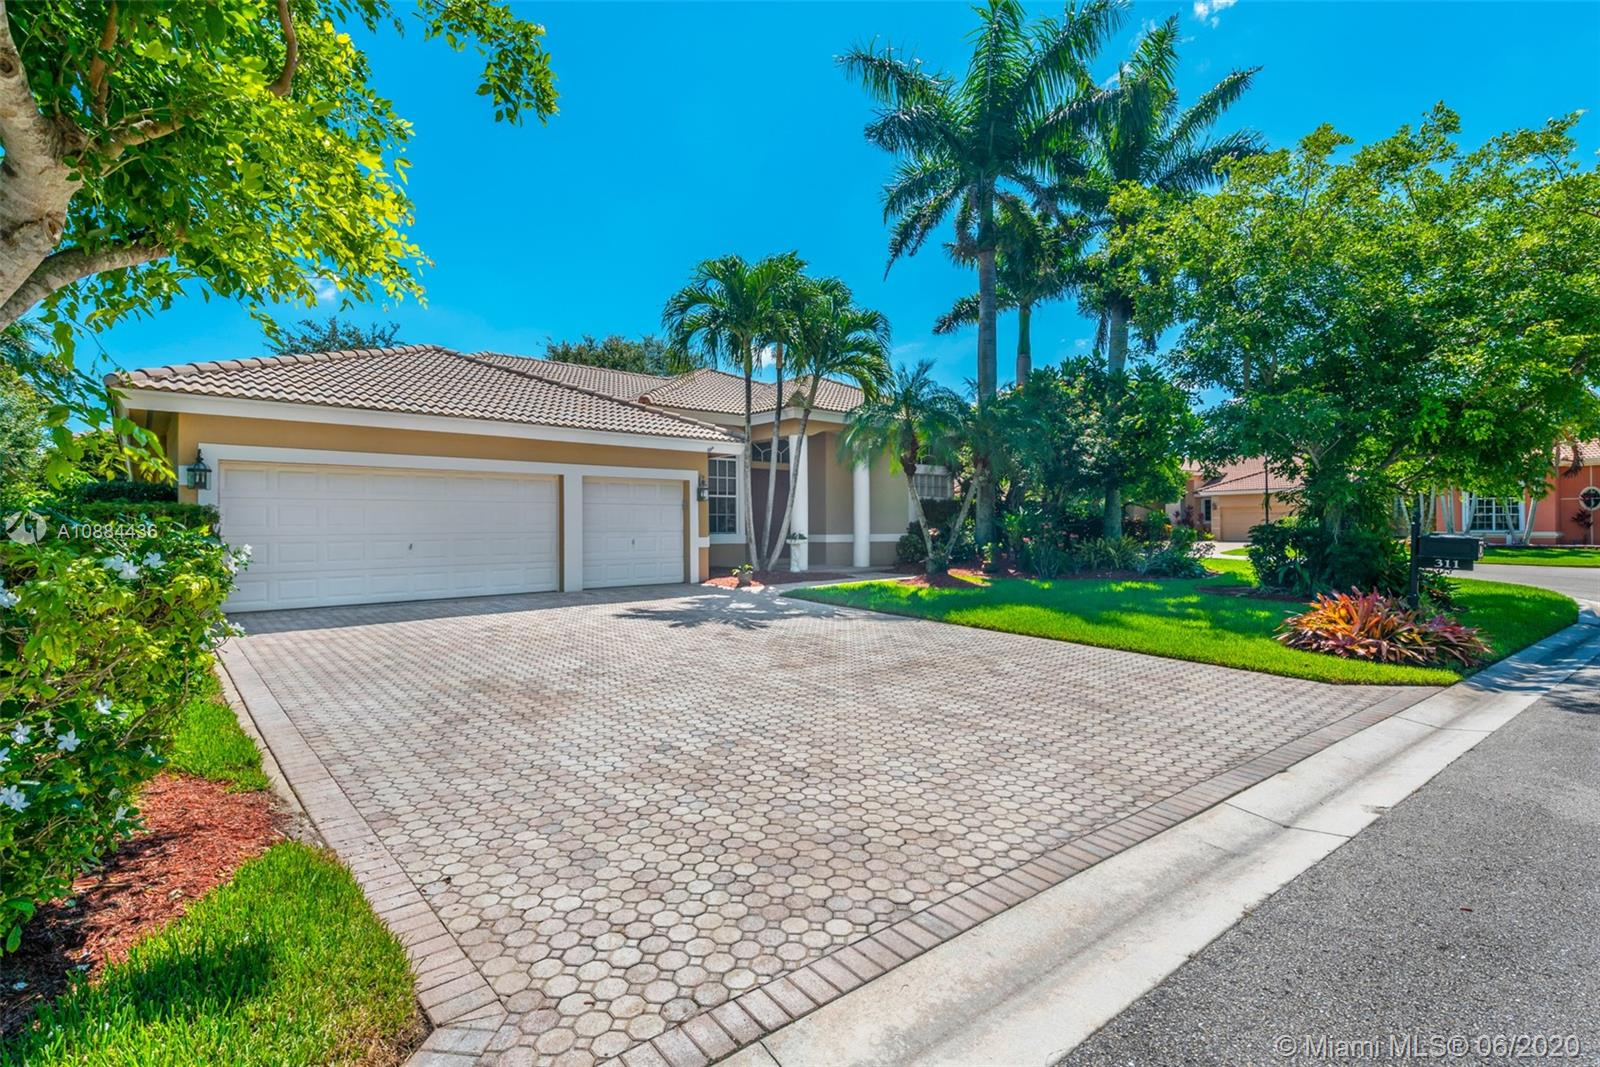 Come and tour this beautiful one story pool home in the gated community of Mariner's Cove. This wonderfully maintained, open concept home offers 4 beds, 2.5 bath, formal dining room, living room, 3 car garage and open kitchen with a view of your pool & covered patio.